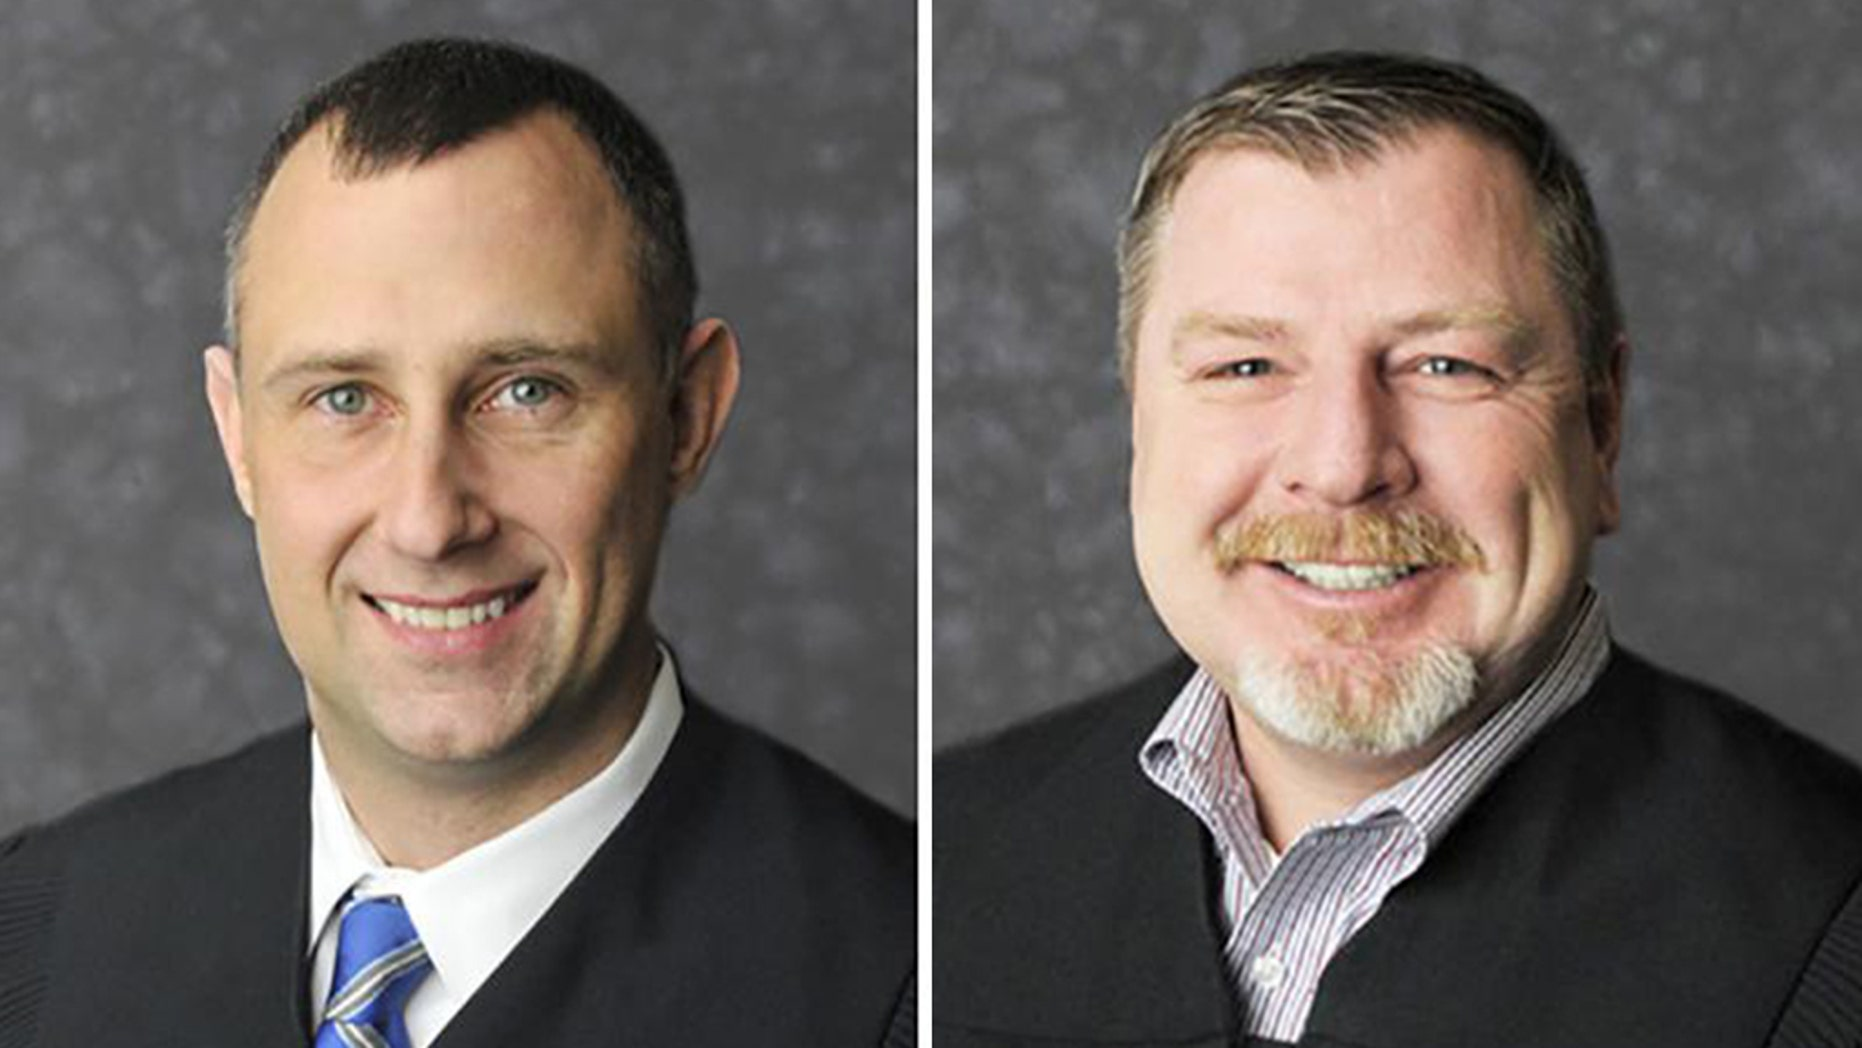 Westlake Legal Group Judges-Bradely-Jacobs-and-Andew-Adams Indianapolis police arrest 2 men in connection with 2 judges shot in parking lot of fast-food restaurant Frank Miles fox-news/us/us-regions/midwest/indiana fox news fnc/us fnc e29ce373-e496-5074-9989-8ae1fe487be7 article